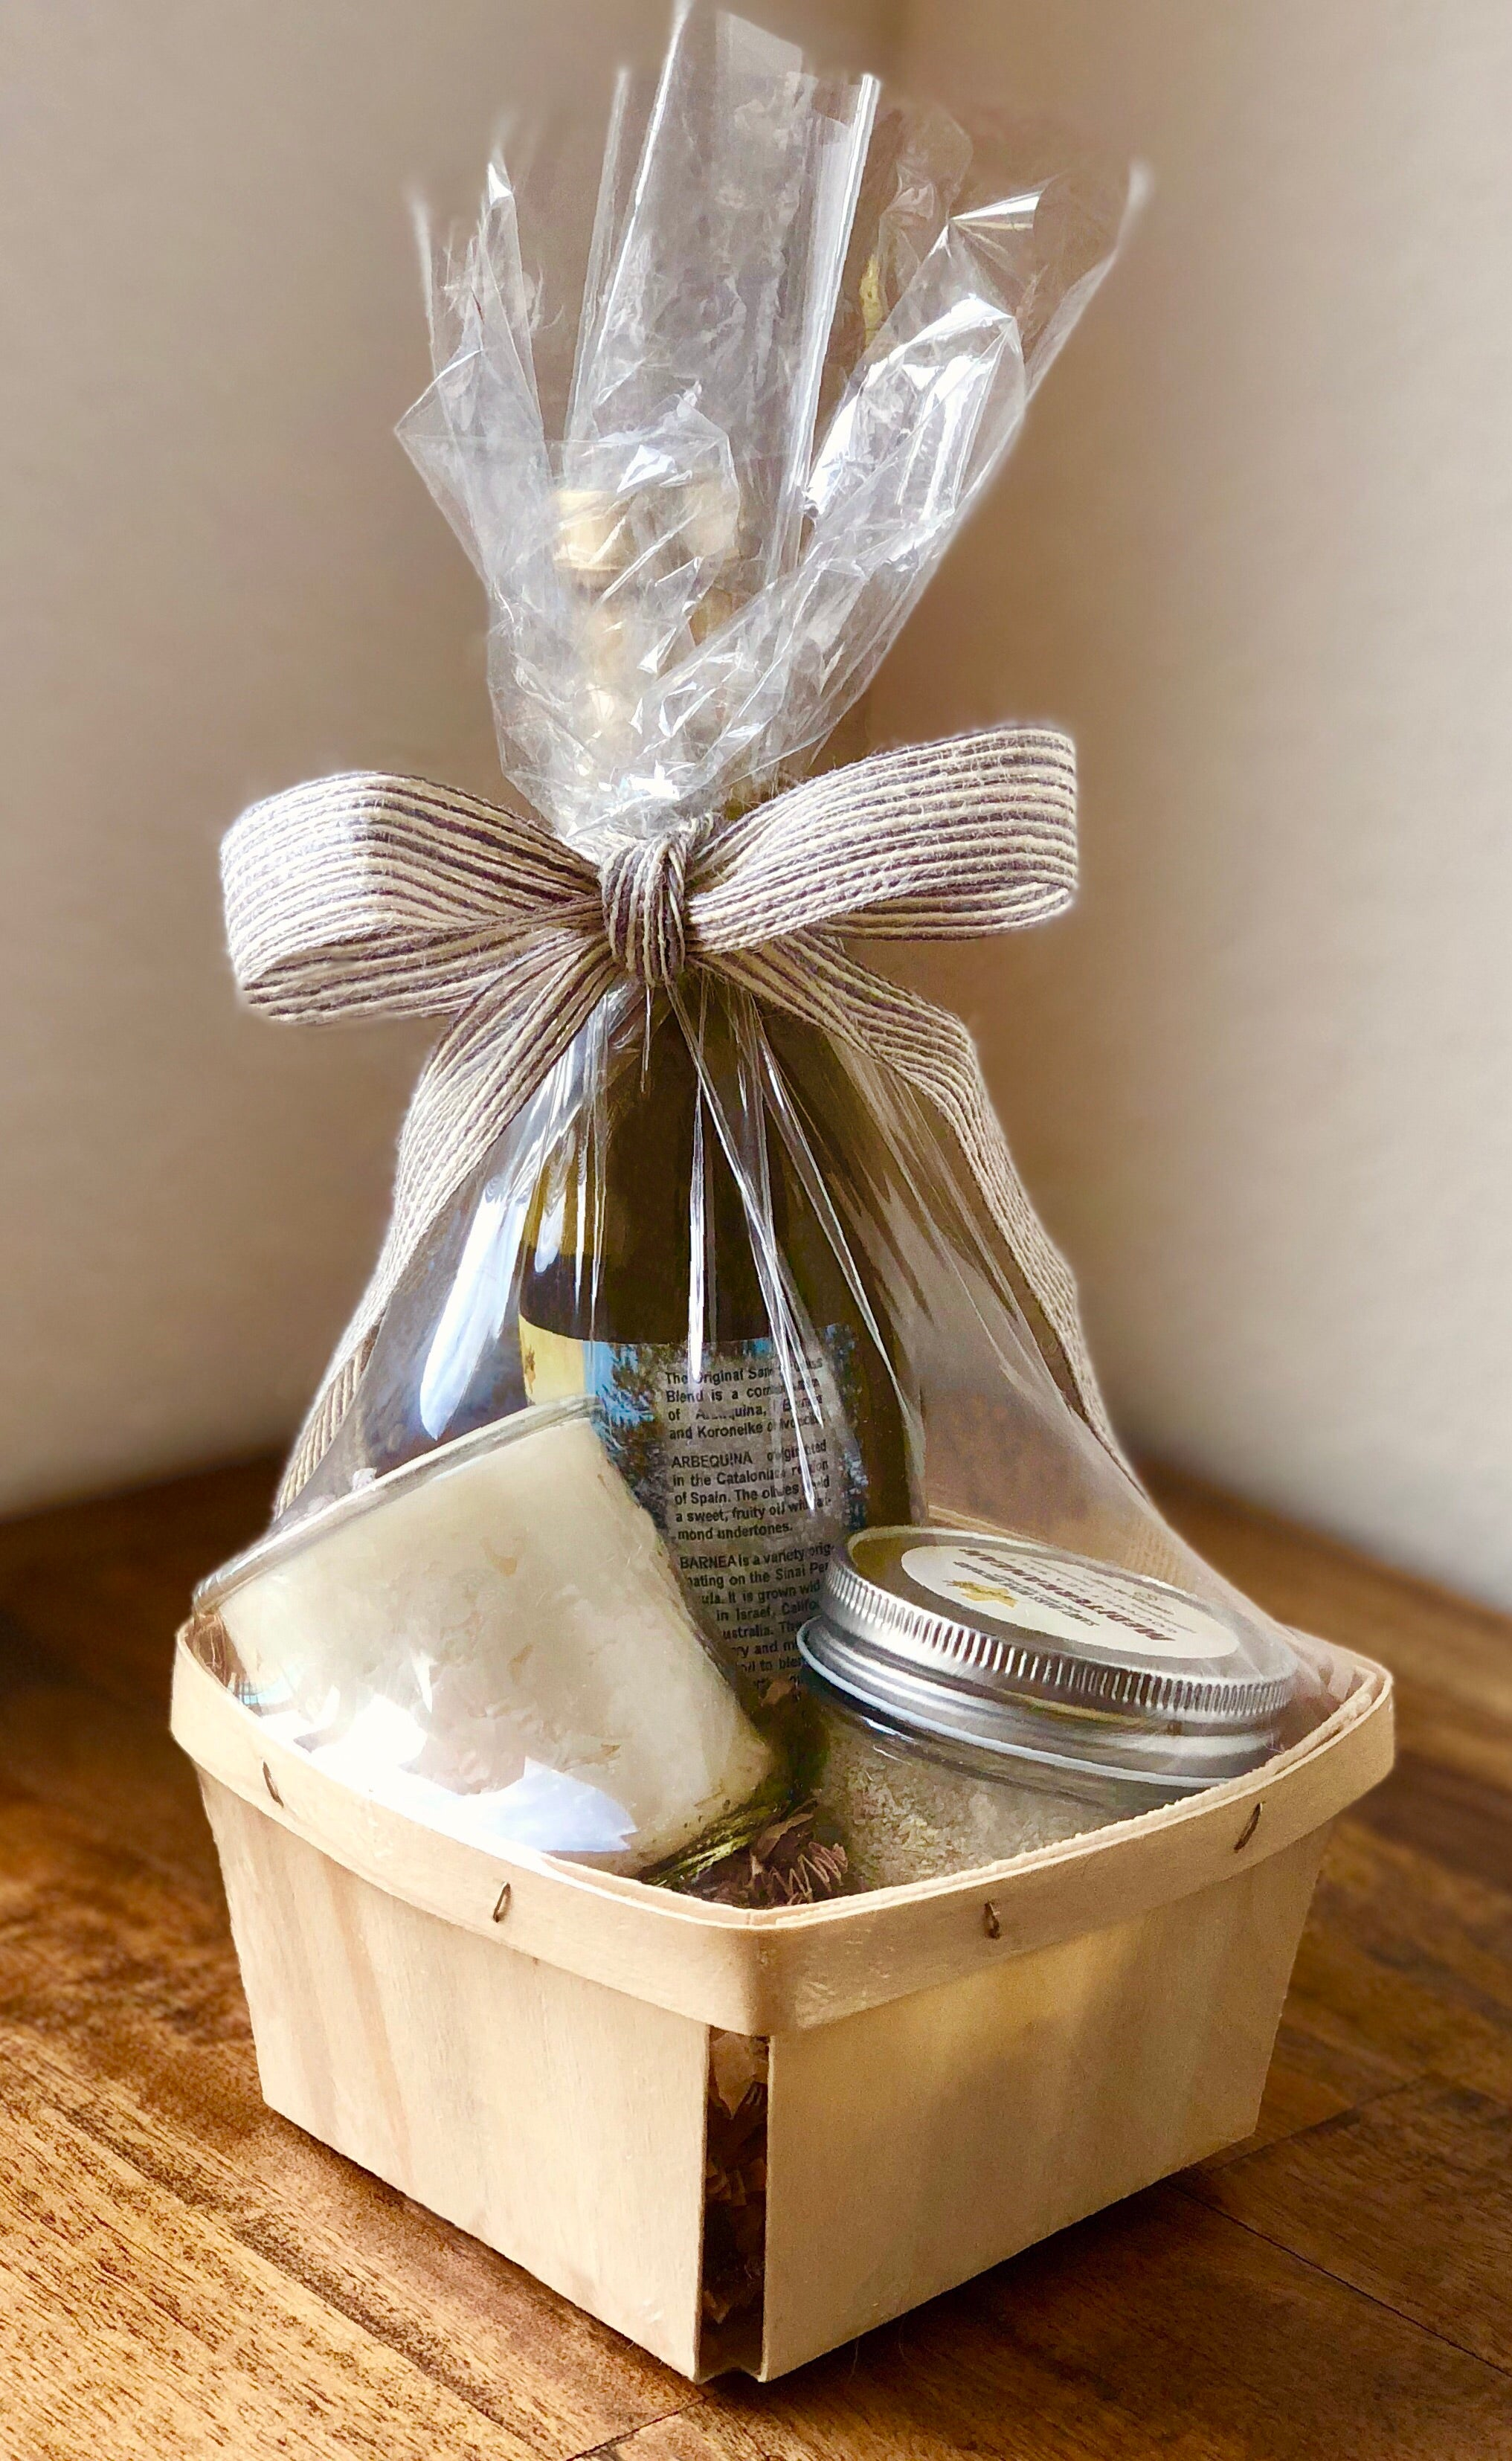 DIY Gift Basket Wrapping Kit - Coarse Linen Blend Ribbon